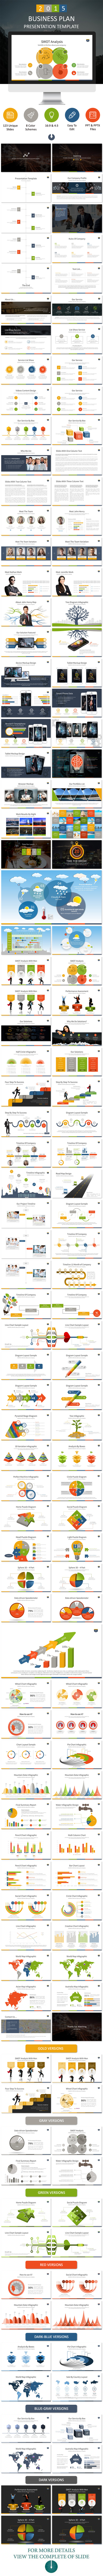 GraphicRiver Business Plan 2015 Powerpoint Template 10946477